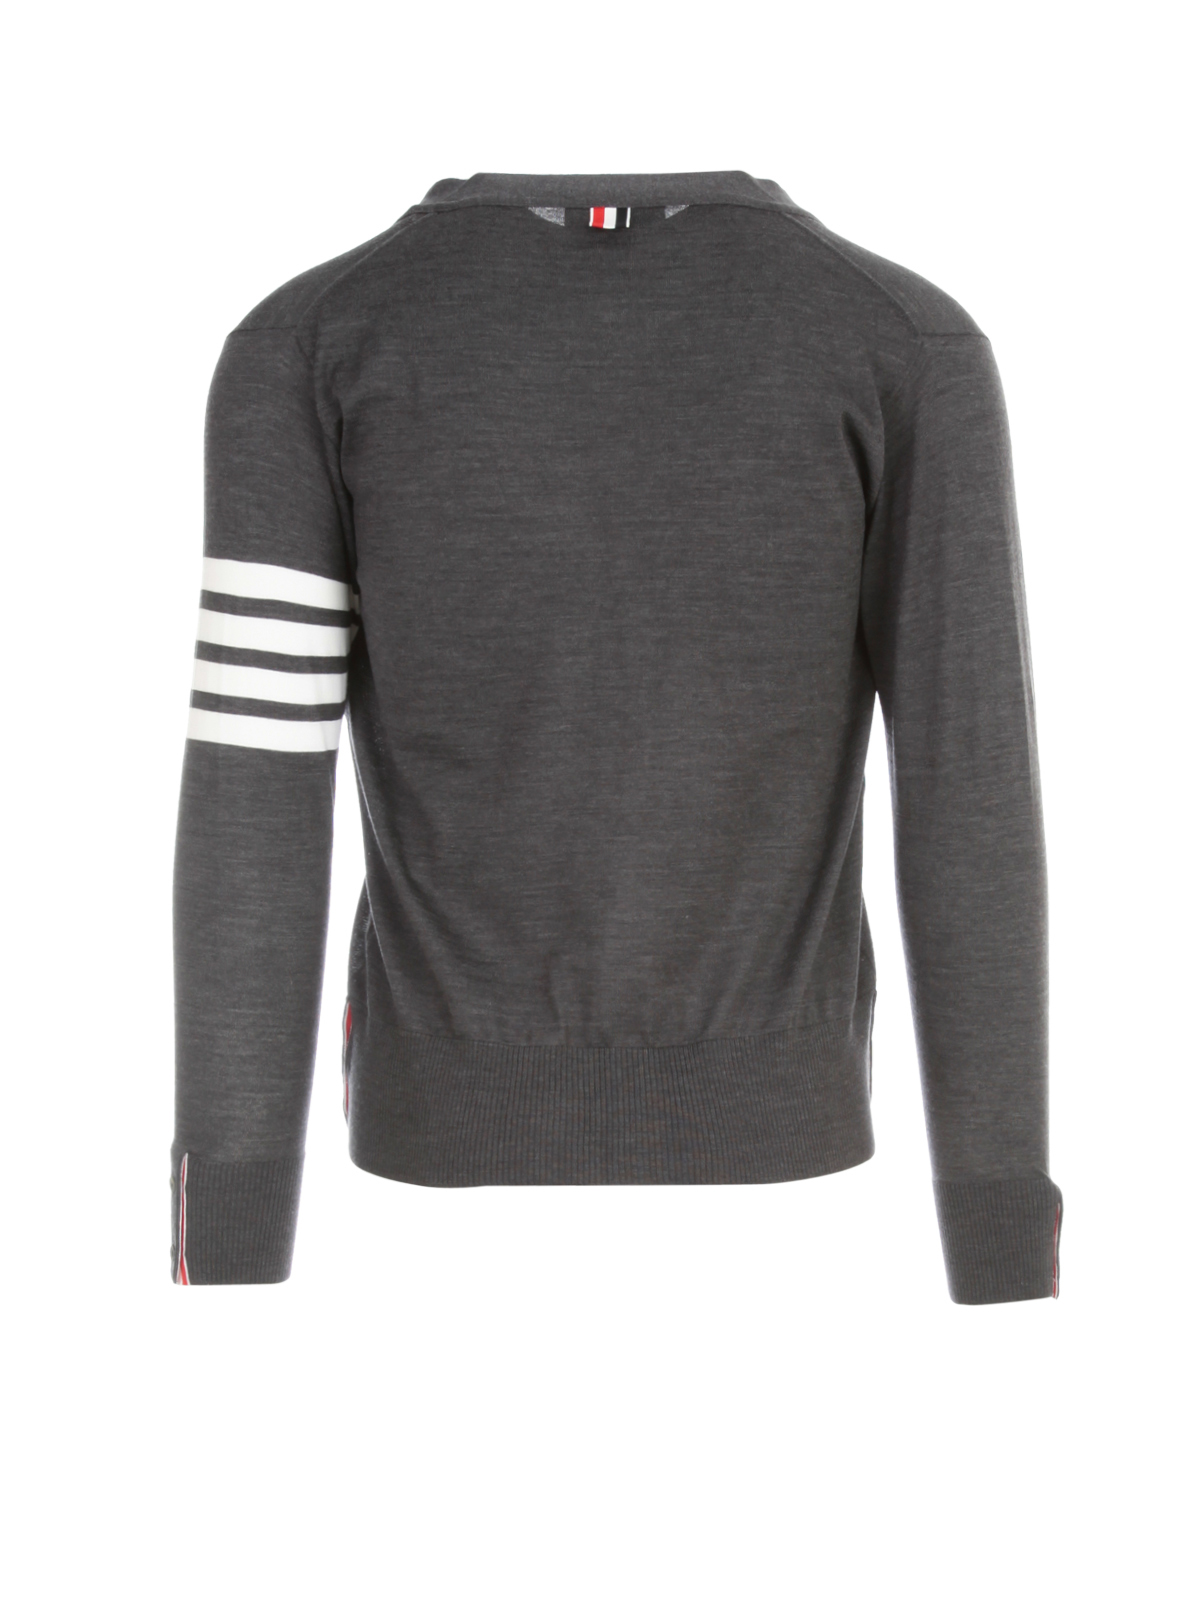 Picture of Thom Browne Sweater